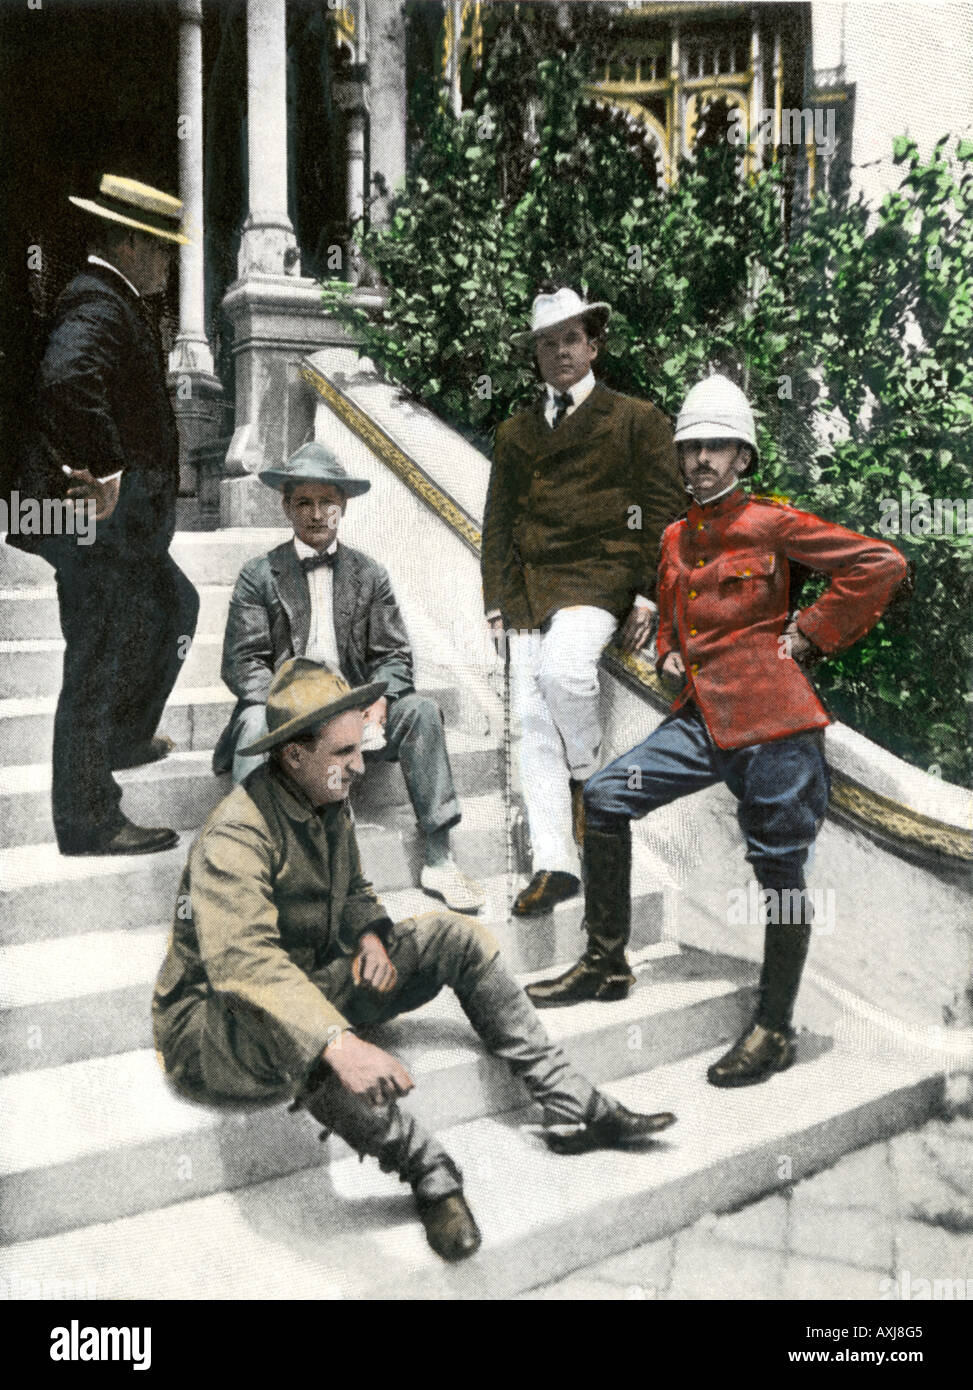 Spanish American War correspondents in Tampa including Frederic Remington left and Richard Harding Davis second from right 1898. Hand-colored halftone - Stock Image